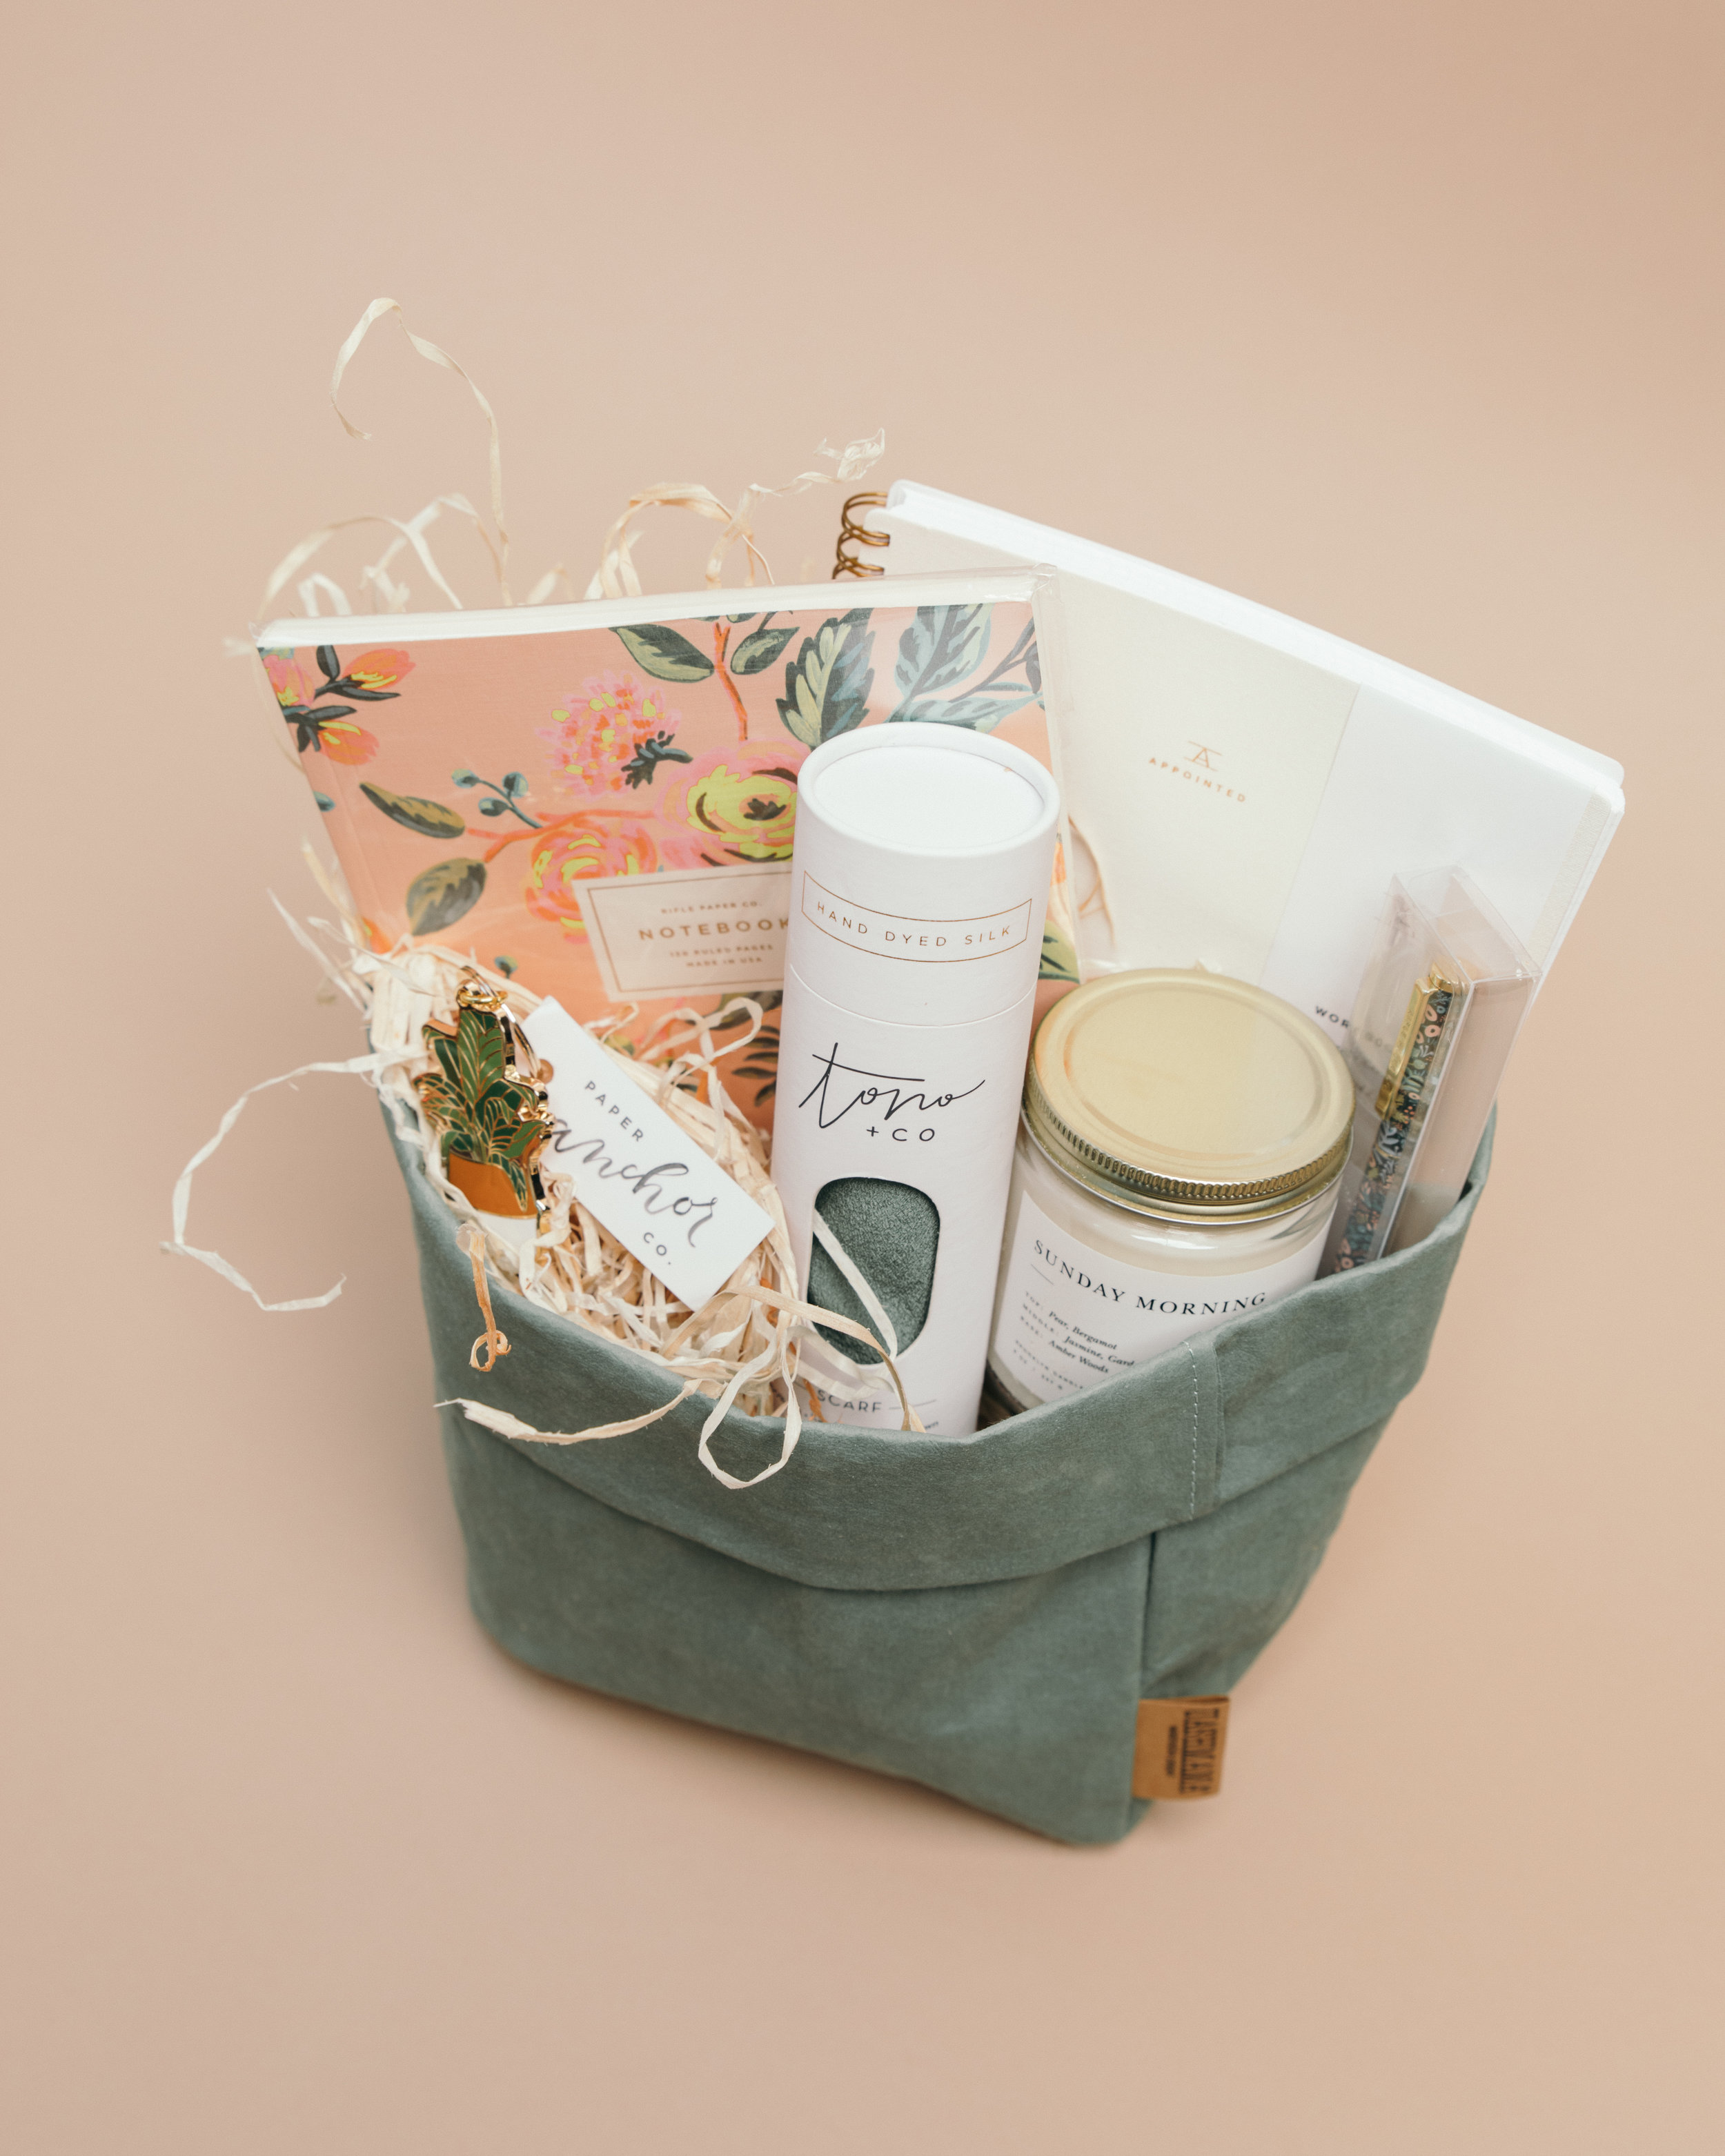 for thepaper lover - Just looking at this basket makes us excited for warmer (but not humid) spring days. Know someone who loves to journal? This is the perfect gift for them!Large Sage Uashmama, $26Rifle Notebook, $15 and Pen, $16Too + Co Scarf, $45Sunday Morning Candle, $25Linen White Appointed Workbook, $22Banana Leaf Keychain, $16